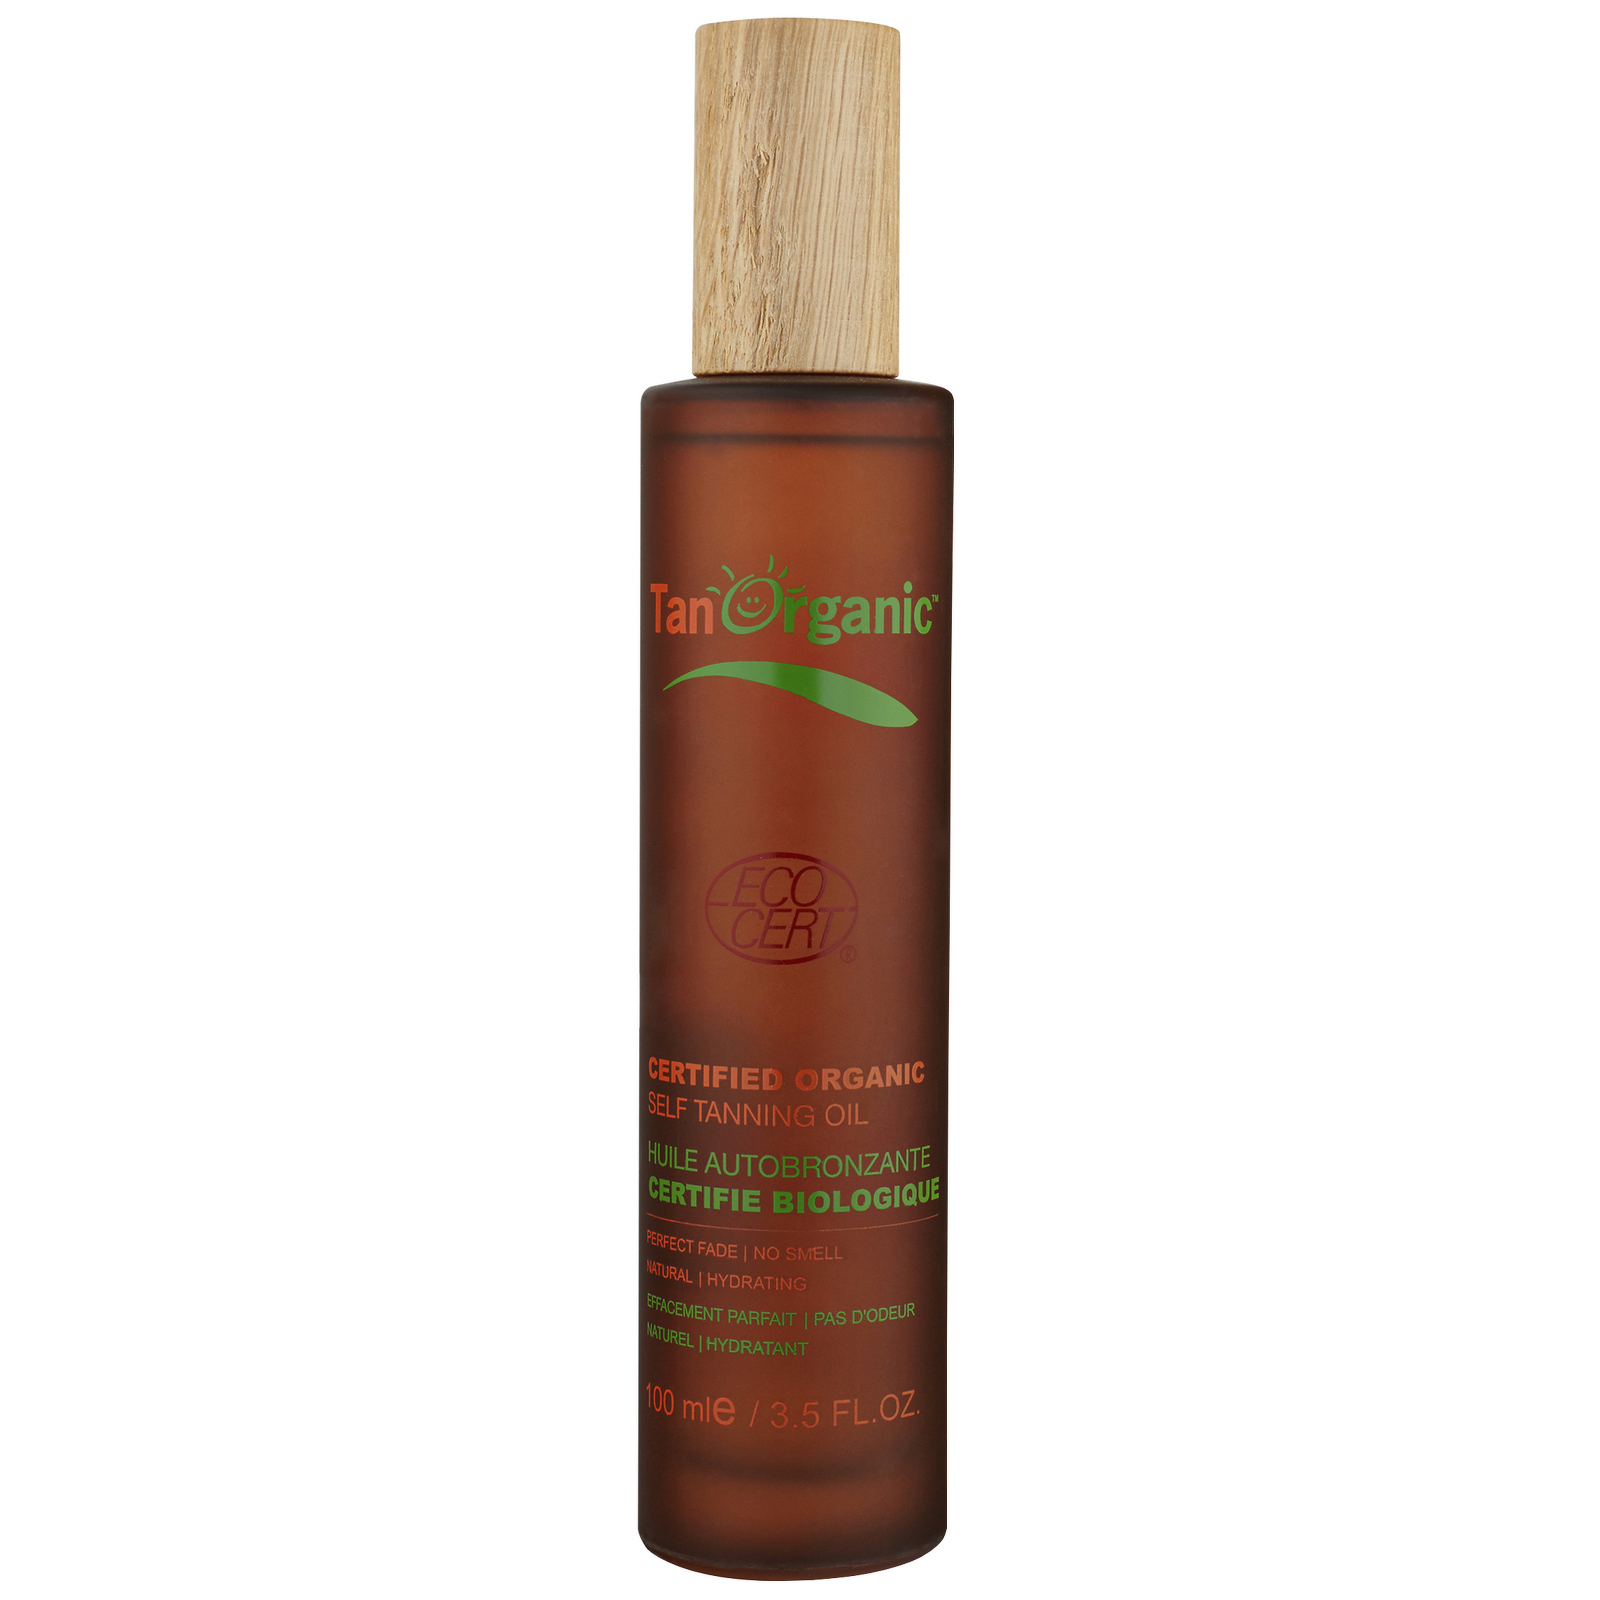 Tan Organic Self Tanning Certified Organic Oil 100ml